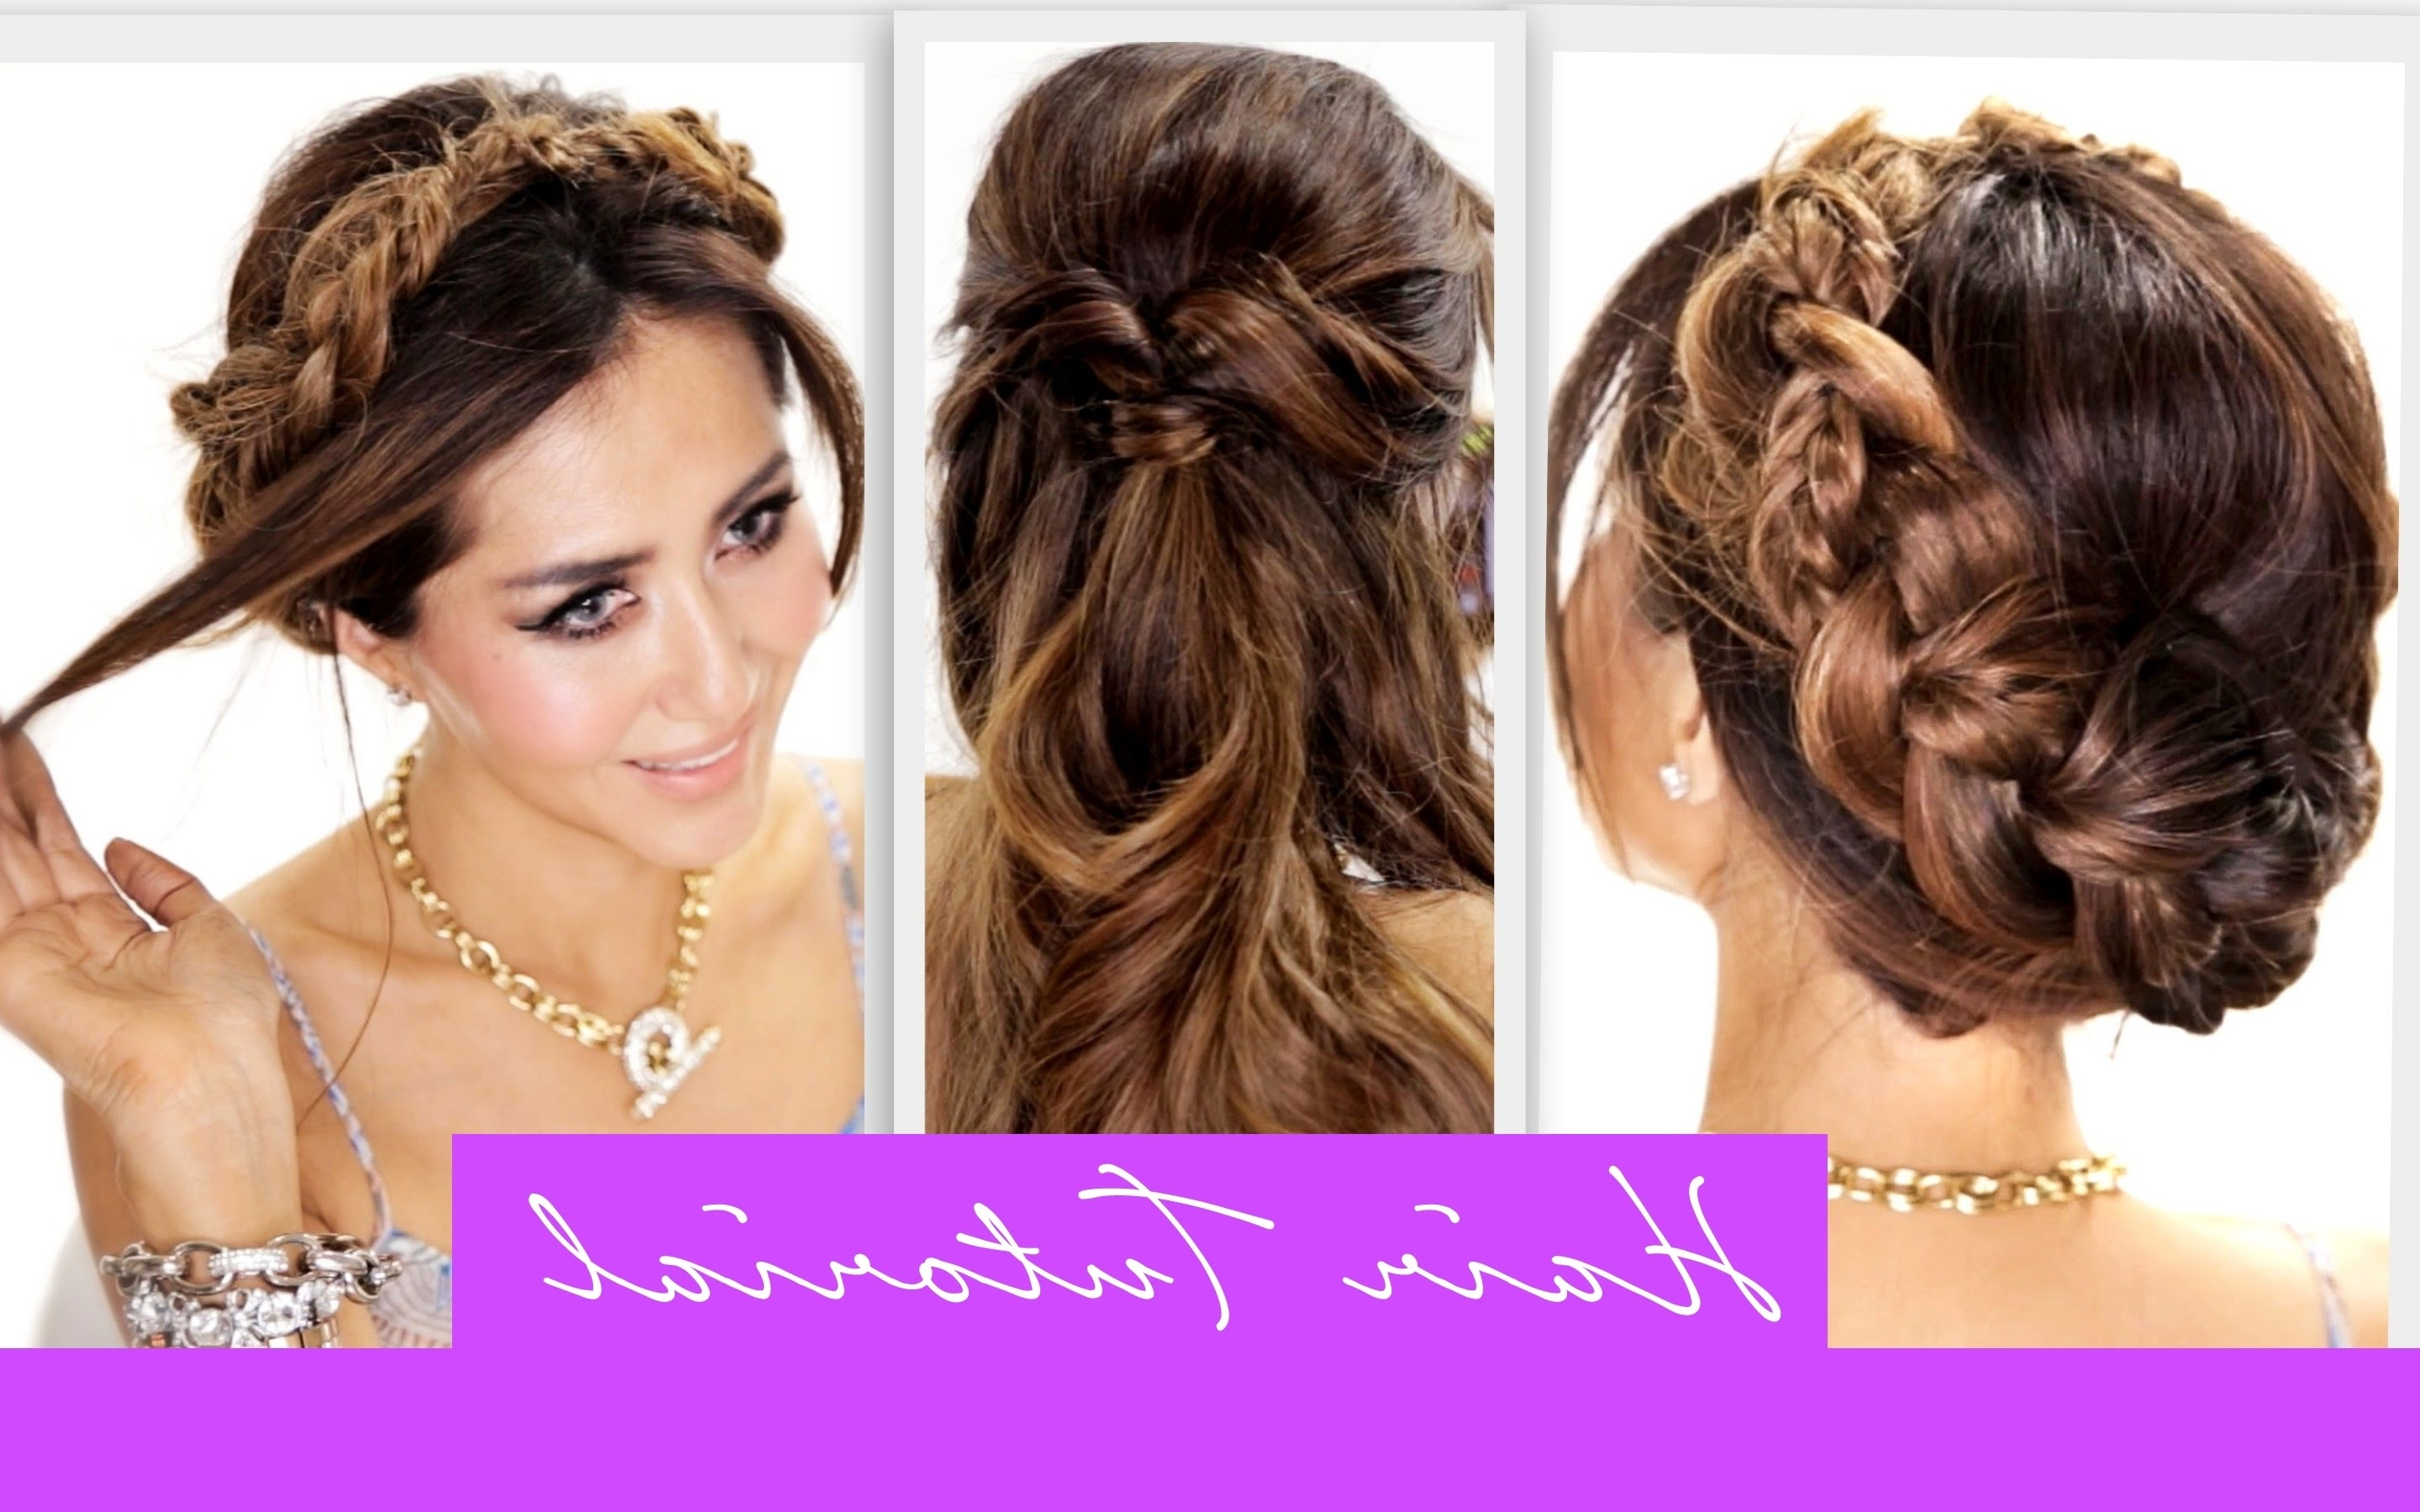 Cute Braids Hairstyle With Well Known Braided Hairstyles For Girls (View 13 of 15)